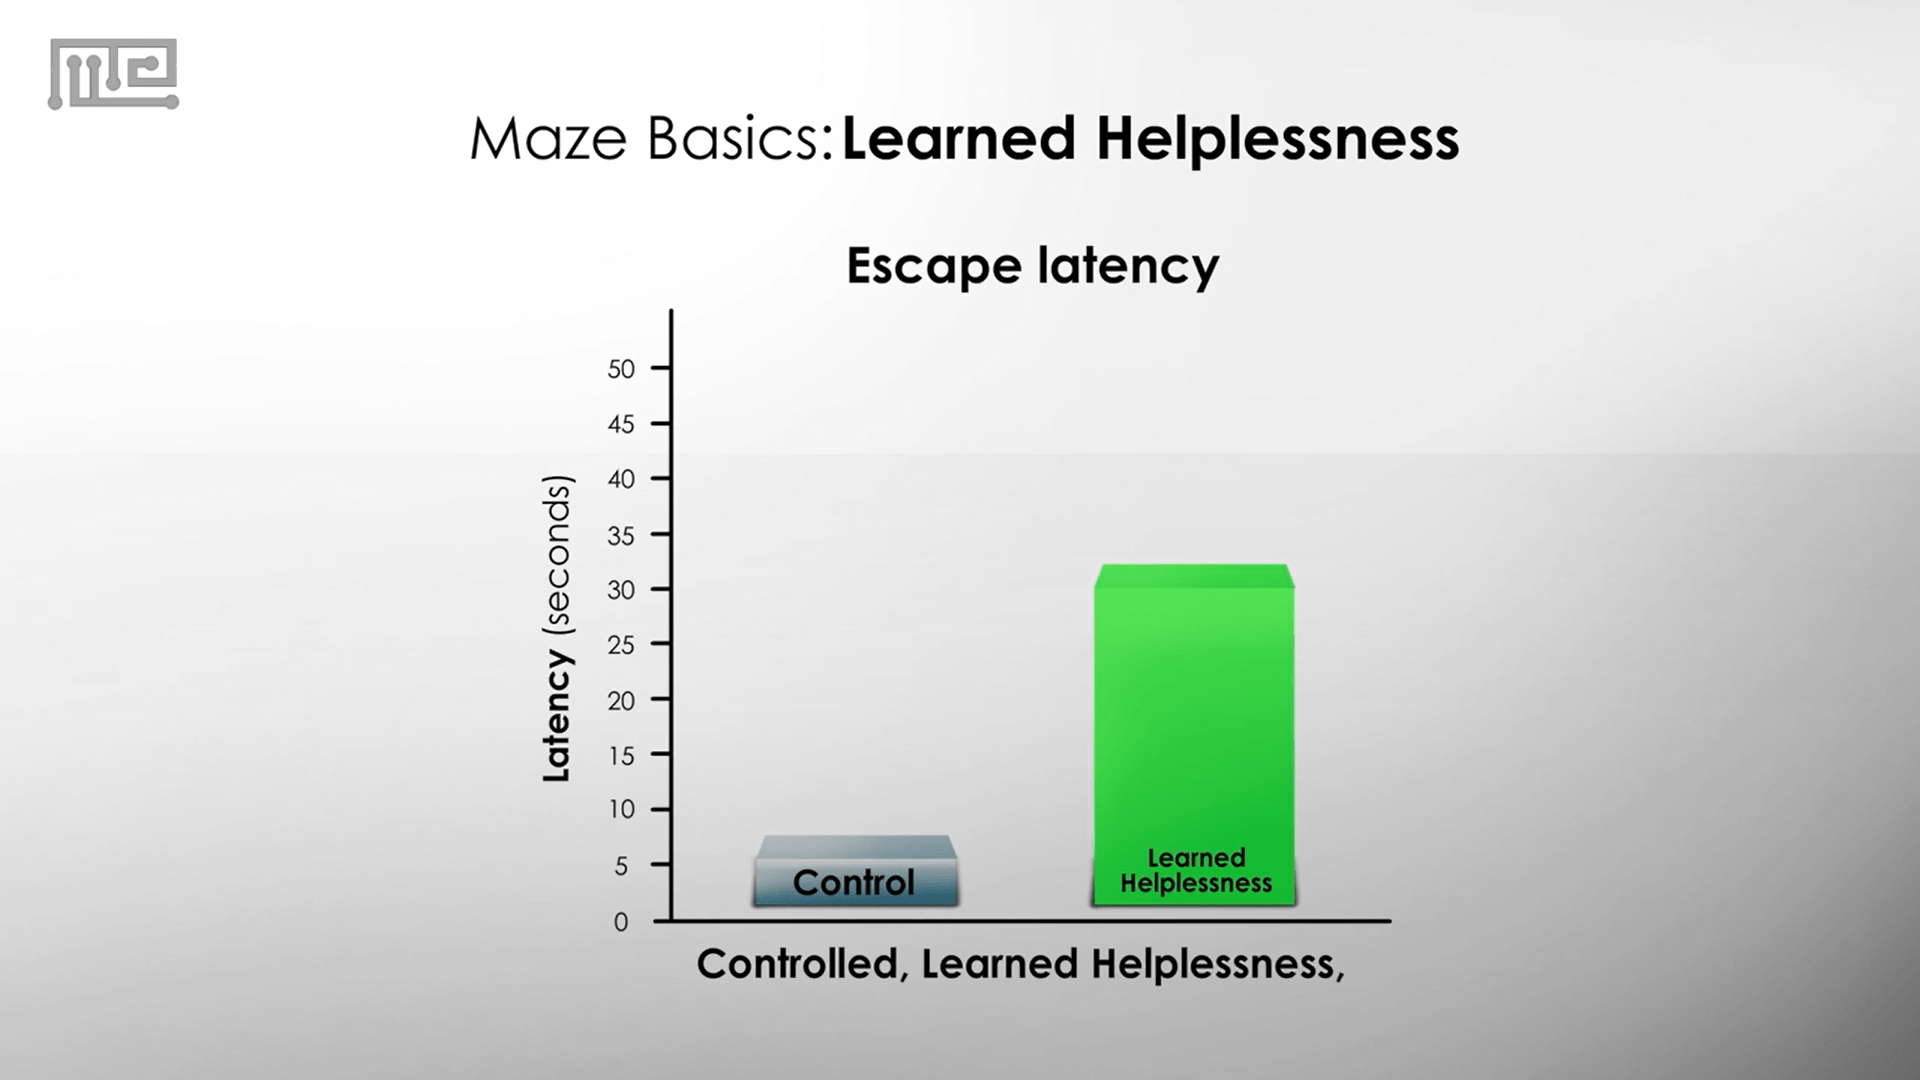 Learned Helplessness escape latency